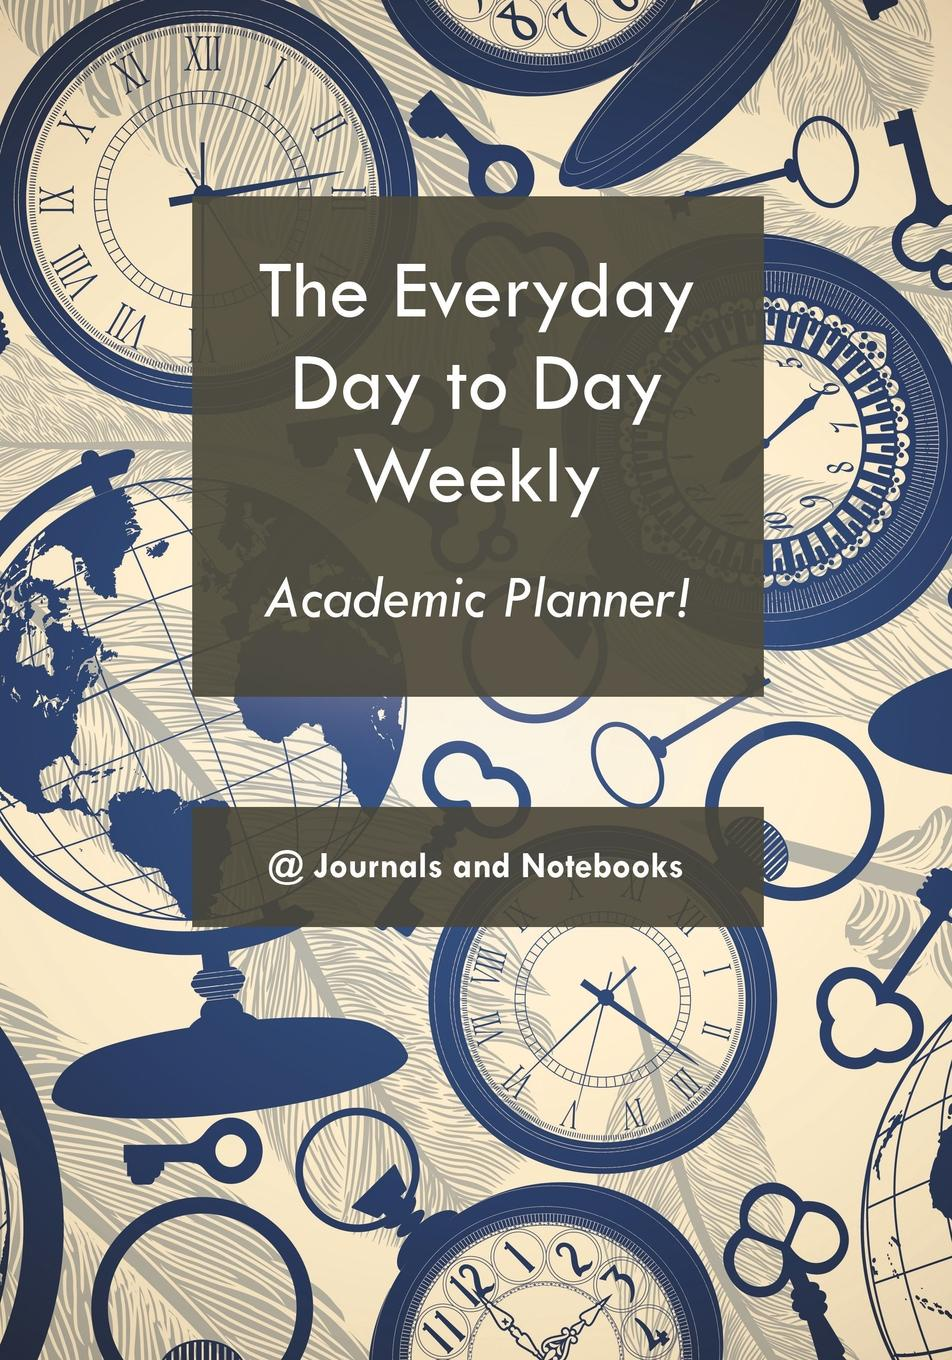 @Journals Notebooks The everyday day to weekly academic planner!